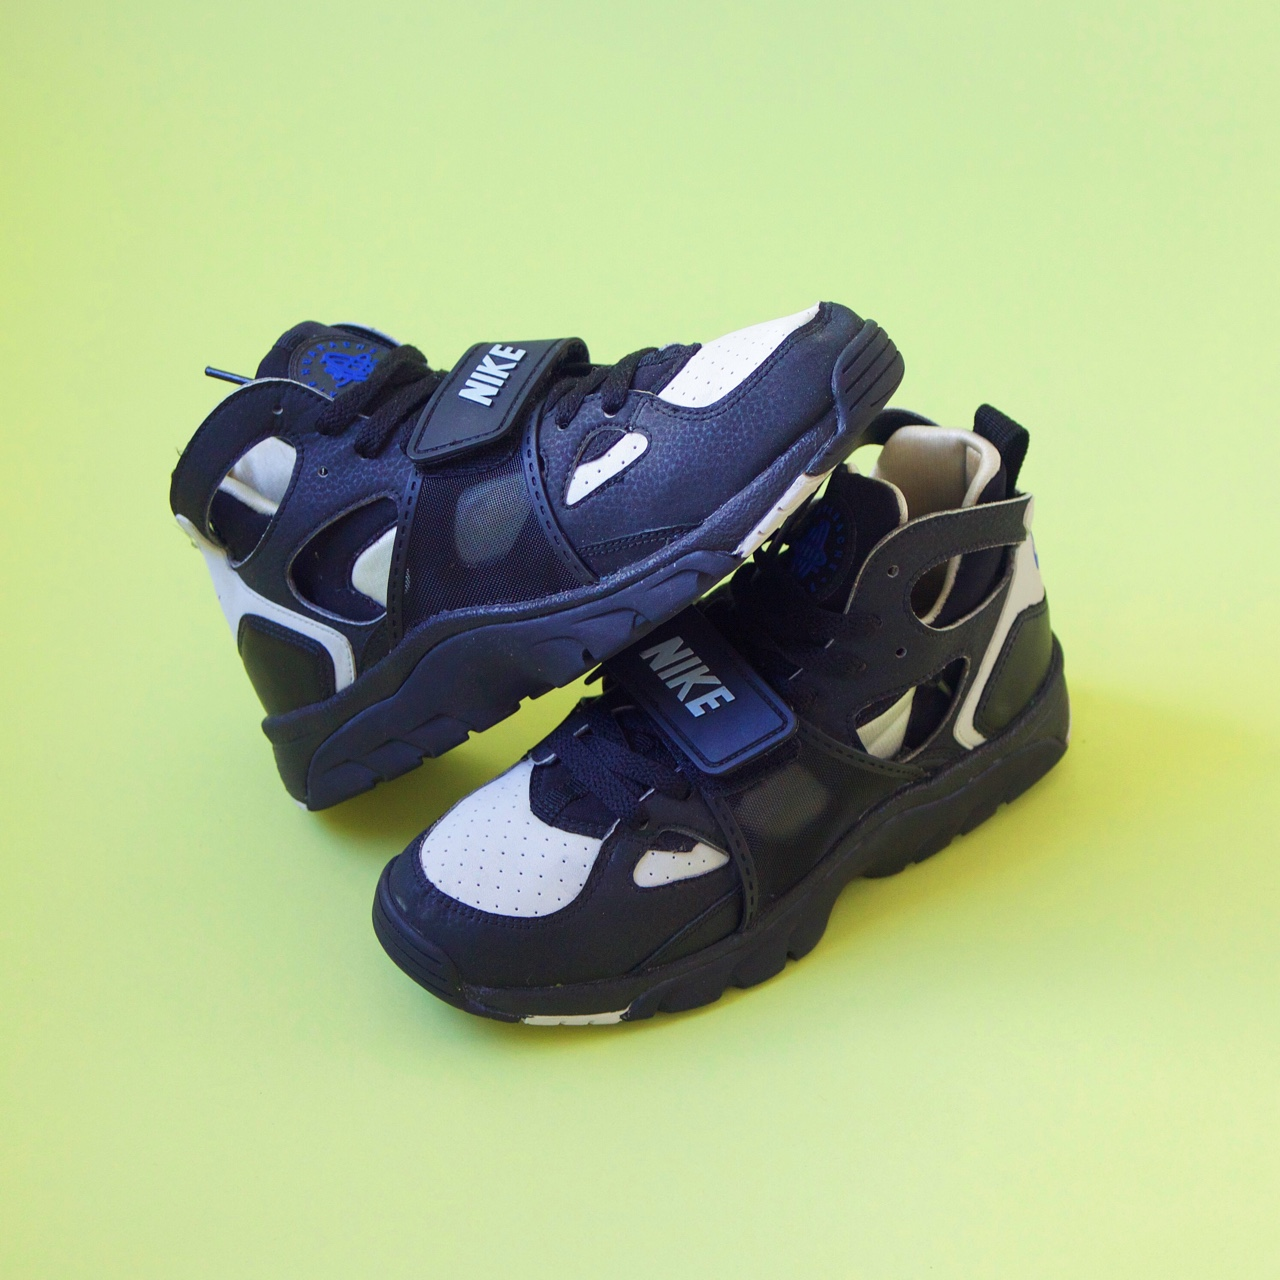 size 40 9652d ddc43 Nike Air Huarache 2006 - UK 4 - Good Used Condition ...